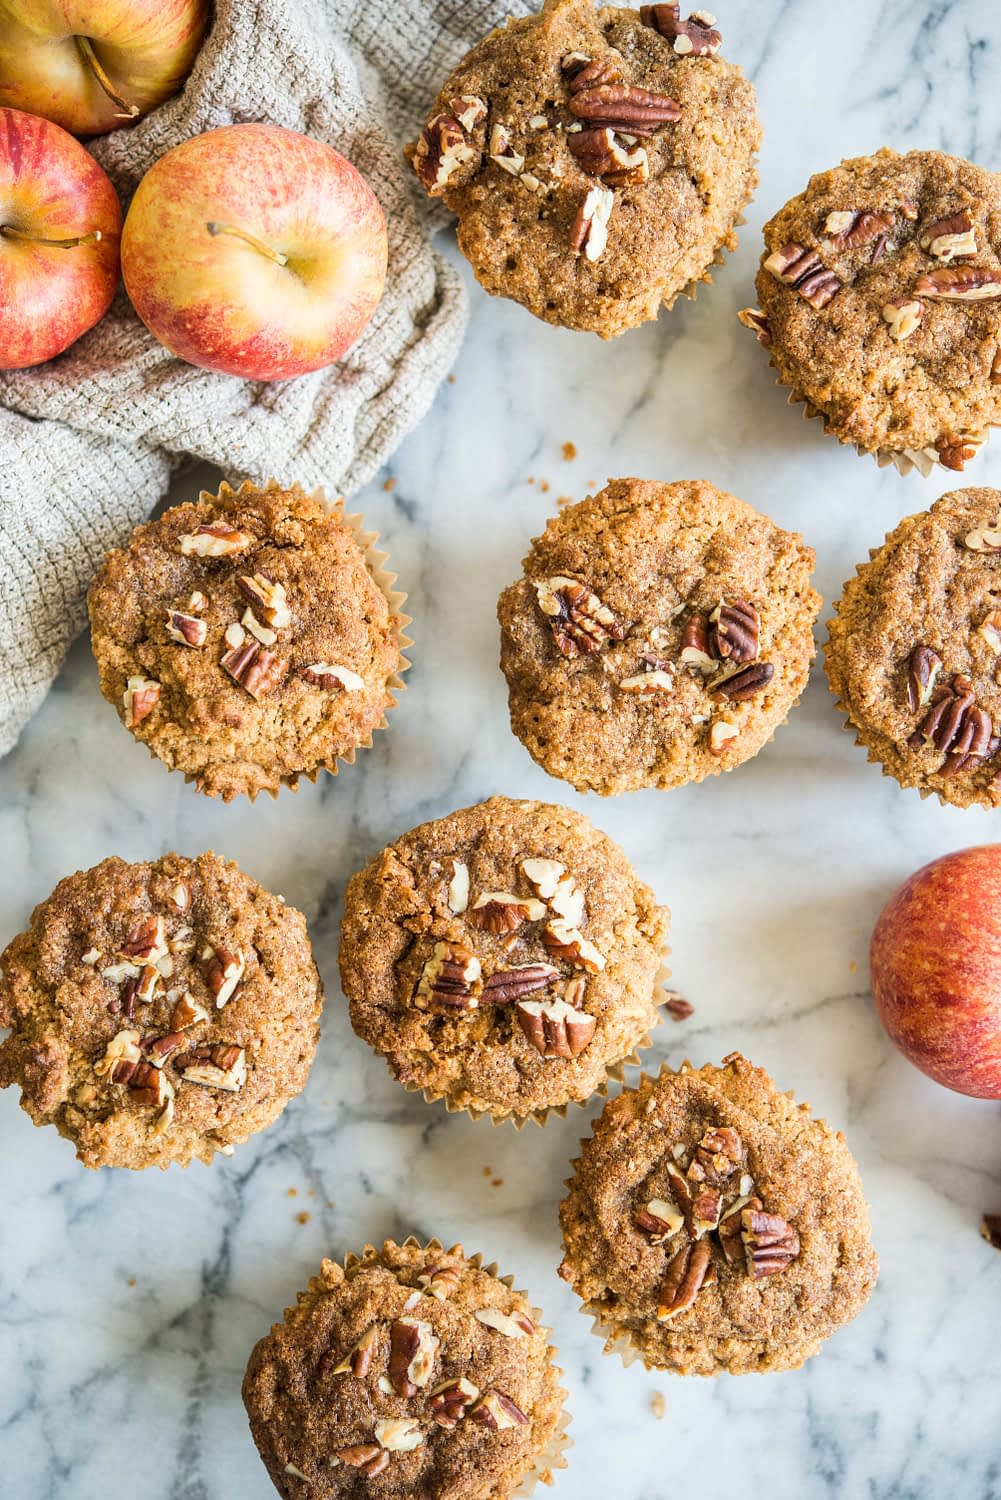 paleo apple cinnamon muffins on a marble board surrounded by apples